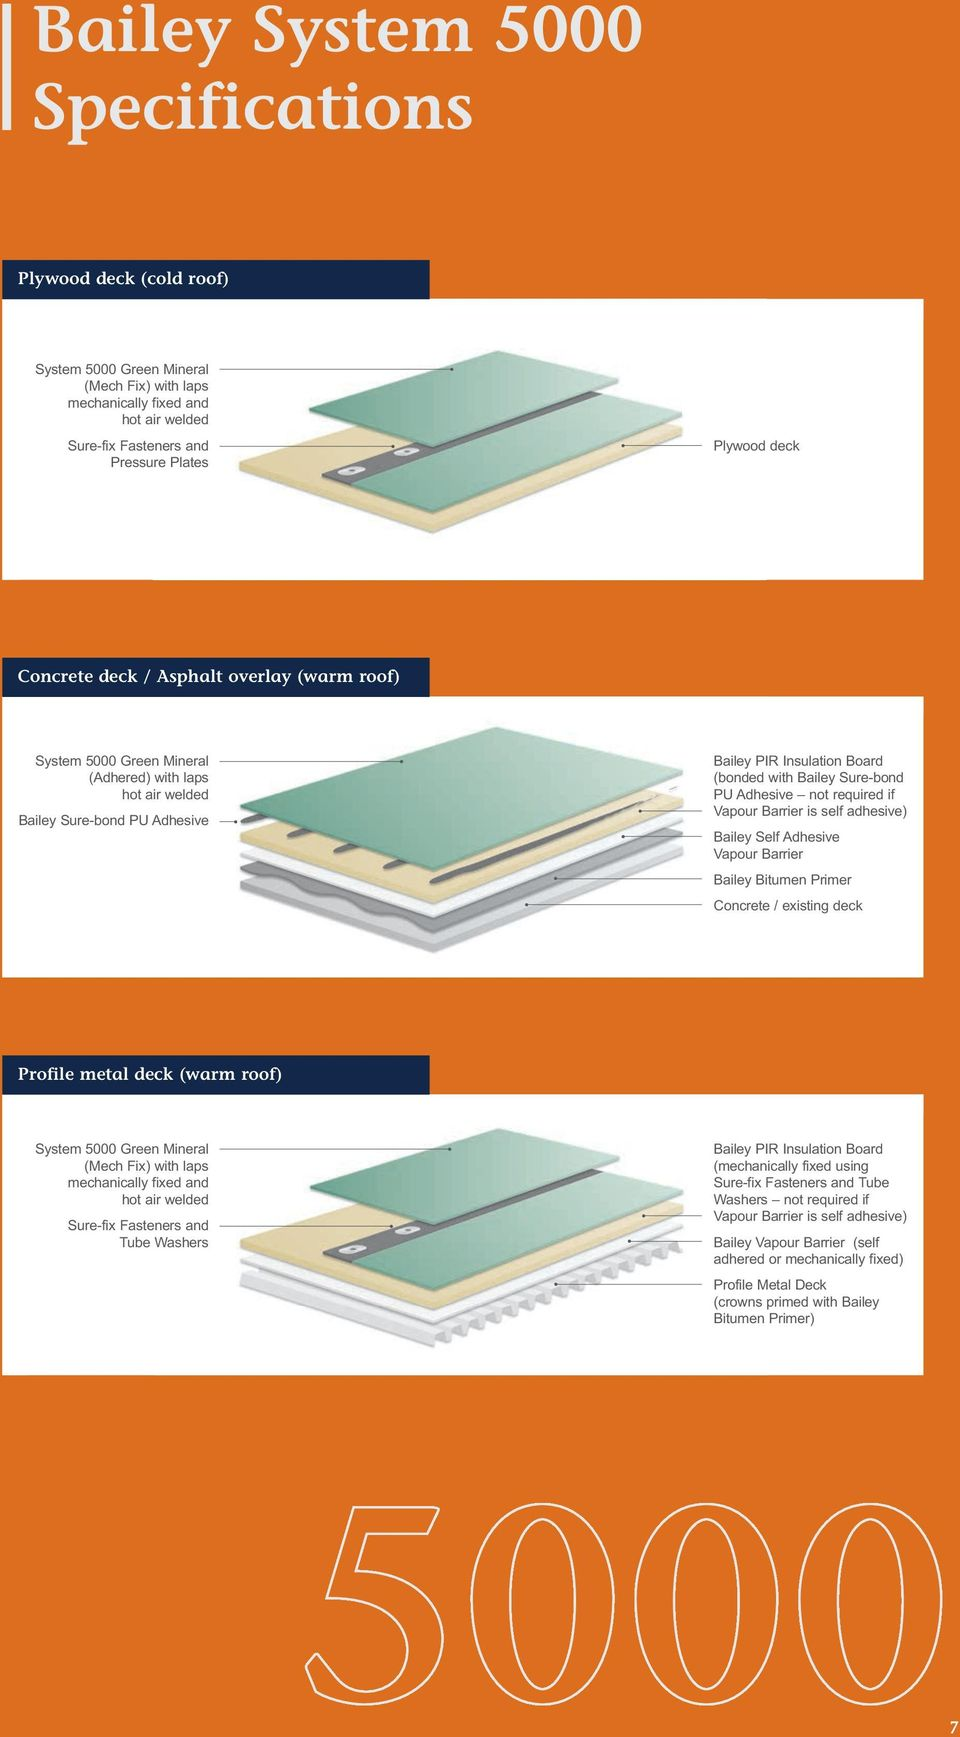 is self adhesive) Bailey Self Adhesive Vapour Barrier Bailey Bitumen Primer Concrete / existing deck Profile metal deck (warm roof) Green Mineral (Mech Fix) with laps mechanically fixed and hot air